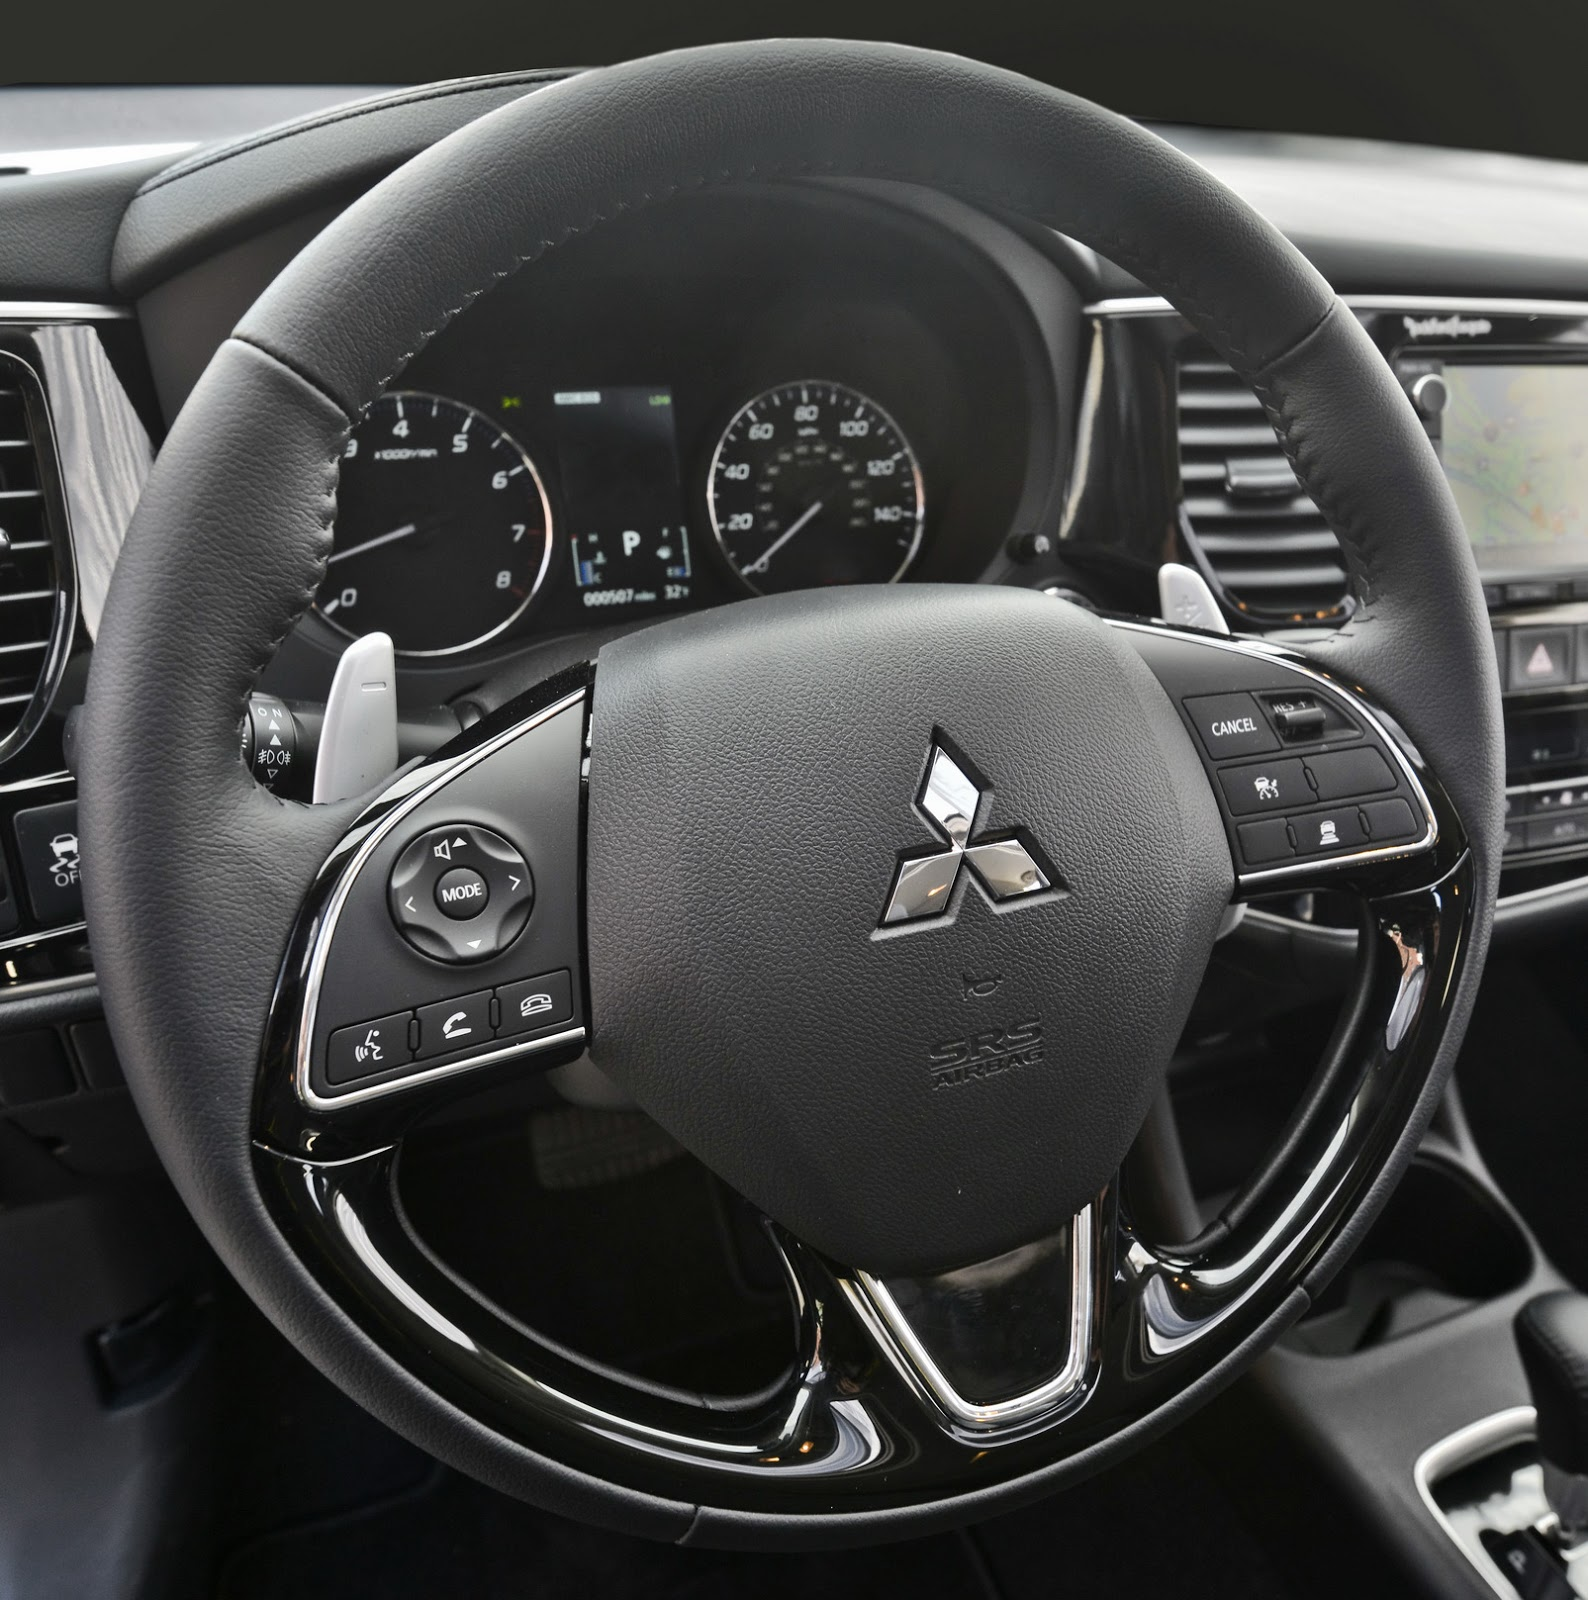 2016 Mitsubishi Outlander Features More of Everything - autoevolution